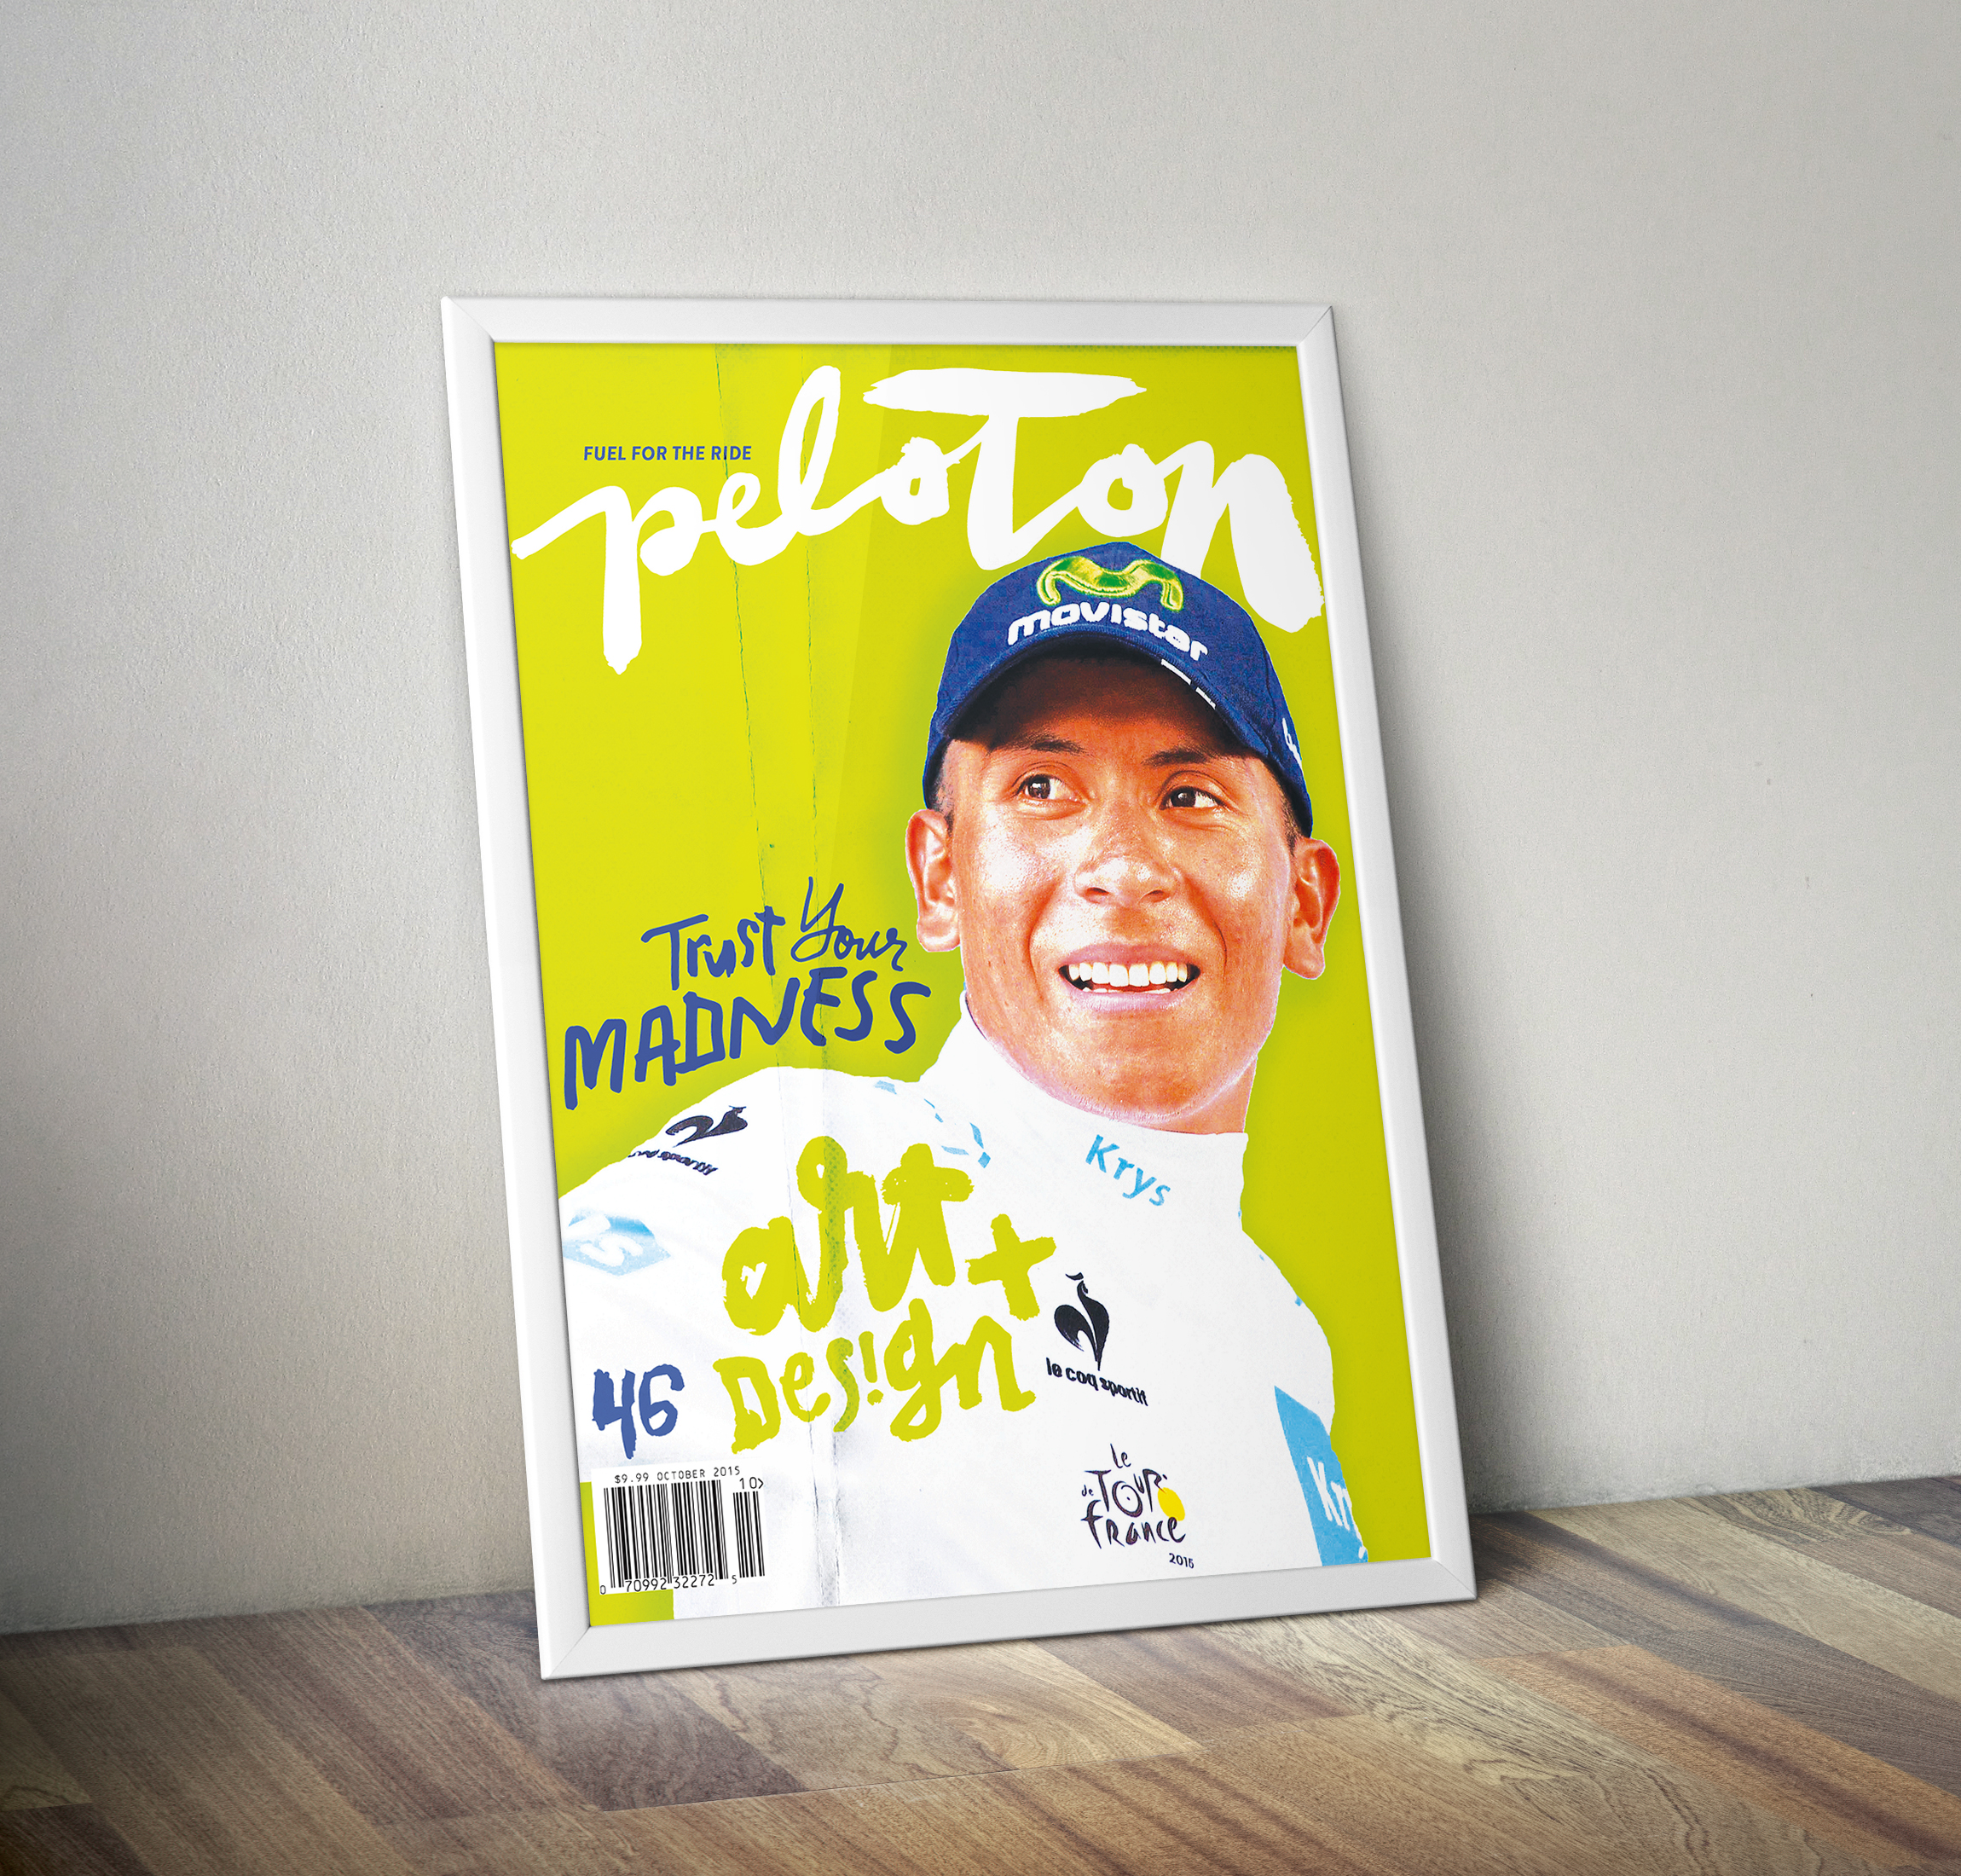 Peloton Magazine #46 Nairo Quintana Subscription Cover - Poster